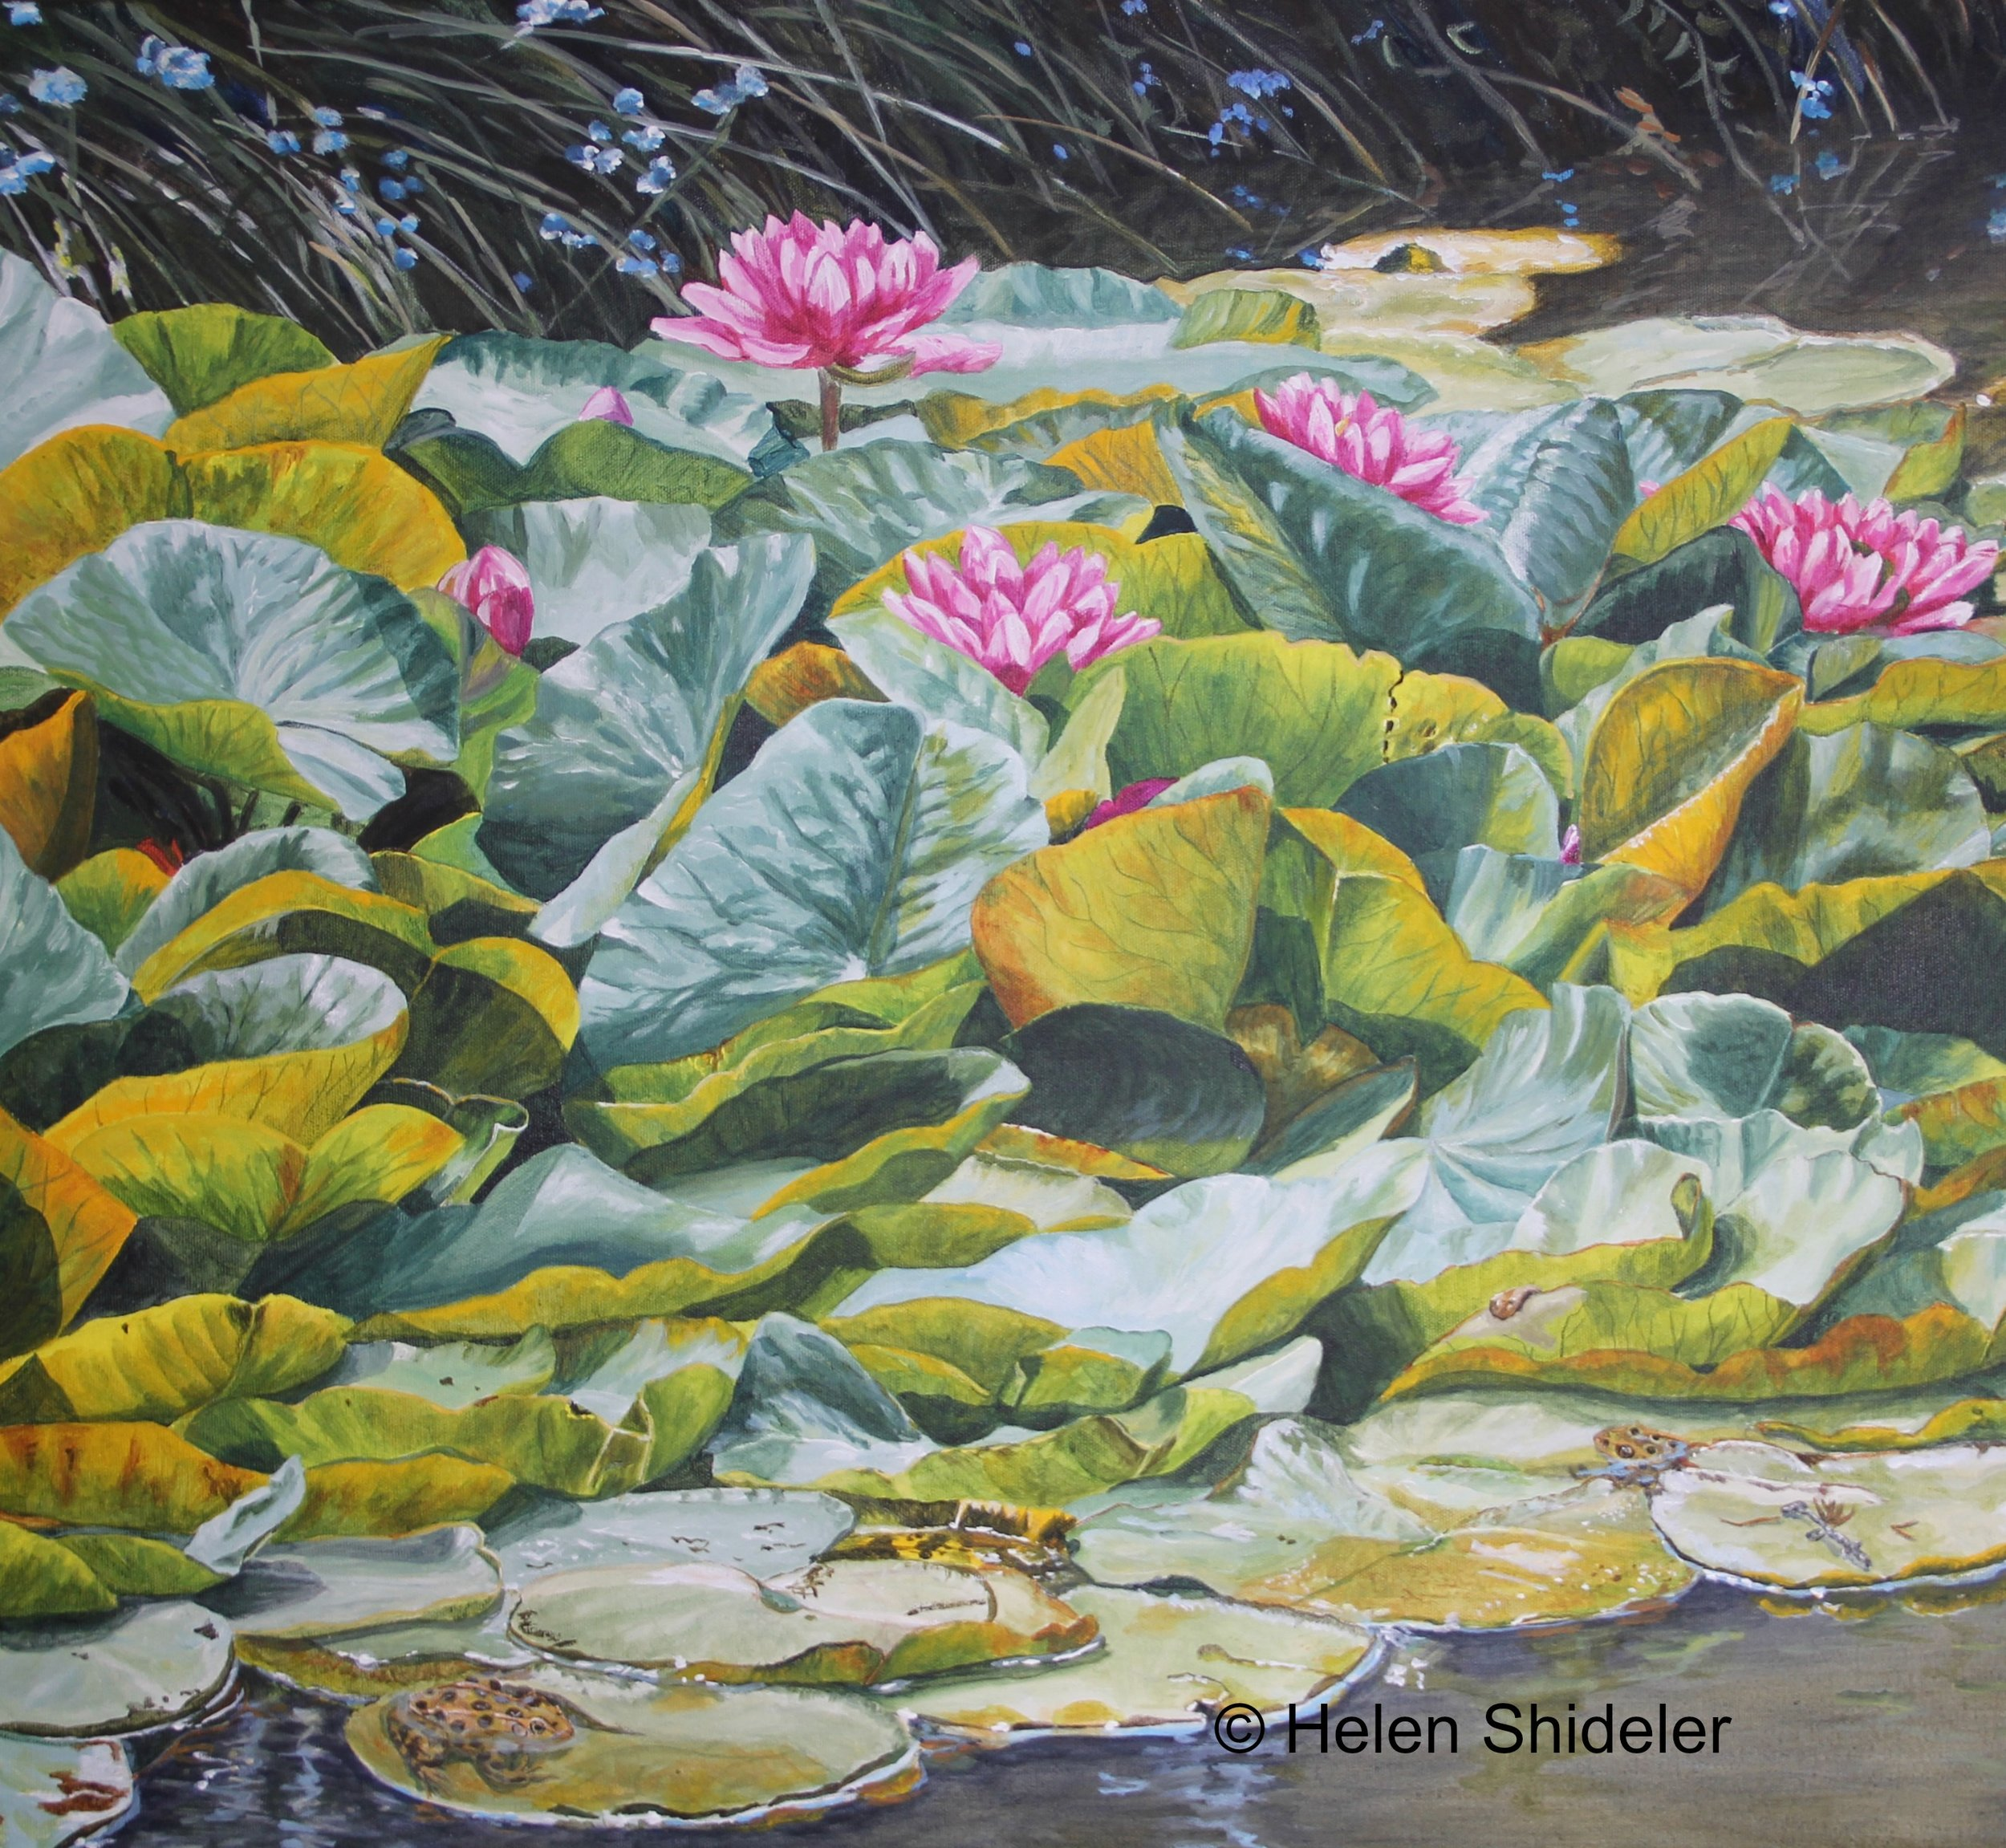 Pond in mid-summer by Helen Shideler